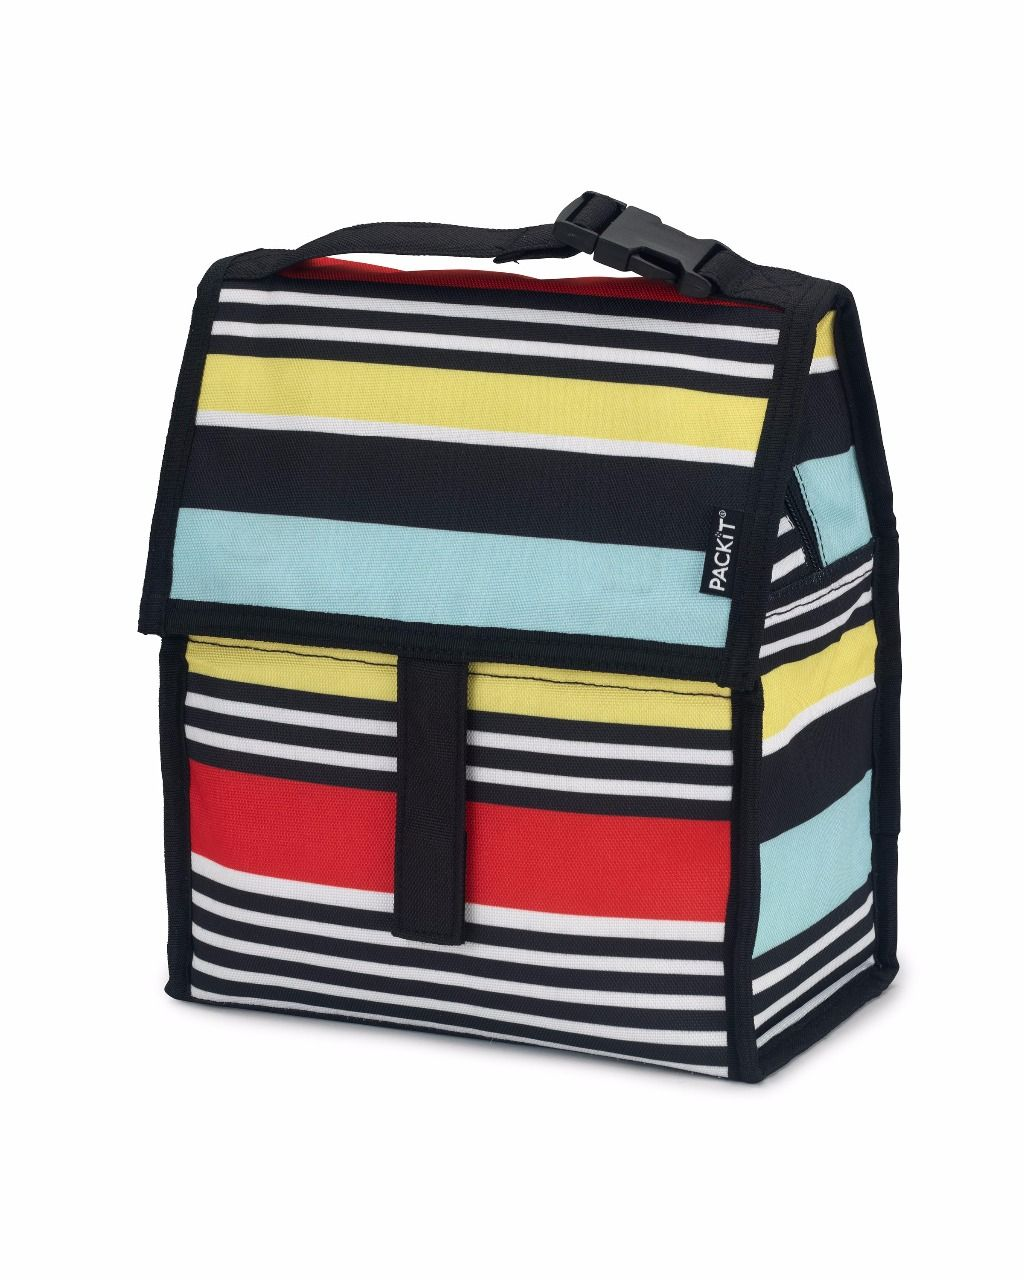 PACKIT Lunch Bag colour